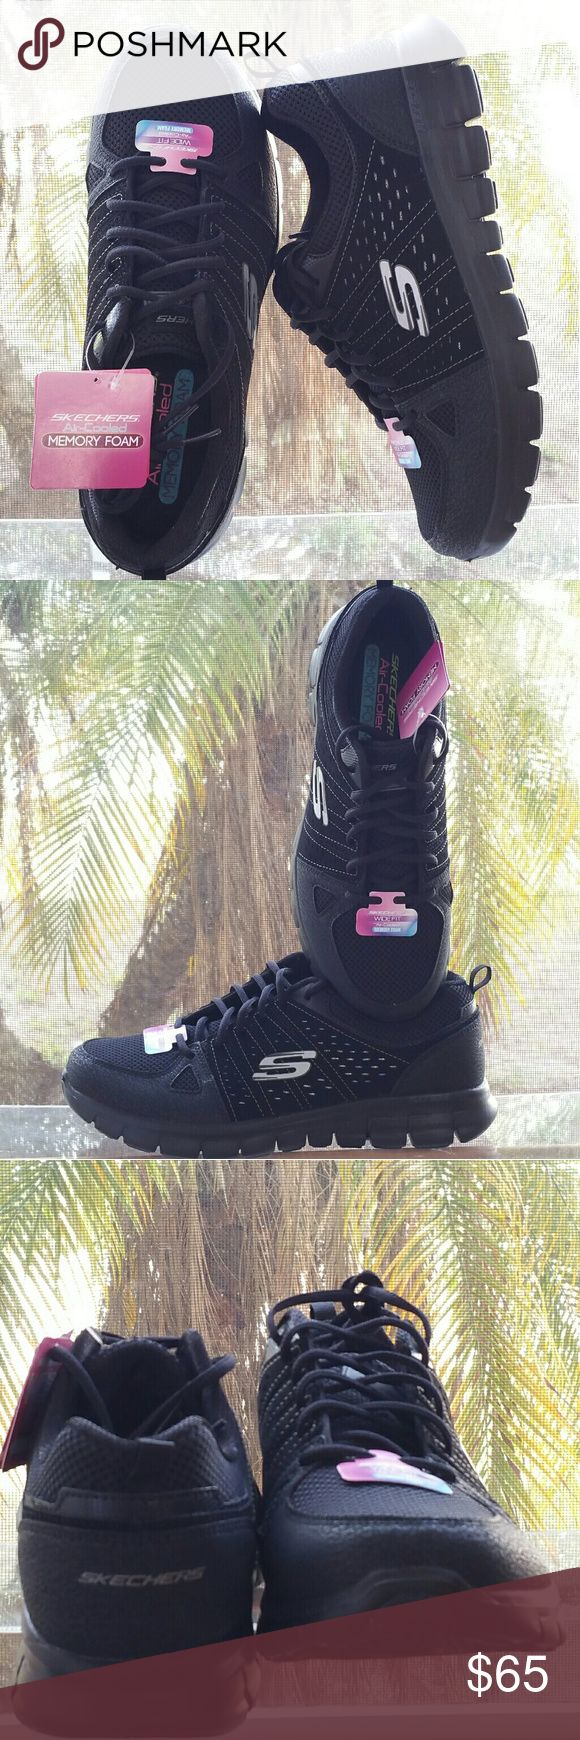 Skechers Sneakers Skechers wide fit light and airy sneakers. For those of us who are on our feet all day working ourselves to death these sneakers are the answer to our prayers! And abundance of padding tread breathable material comfortably fitting sneaks. Loop @ rear for easy slide on aerodynamicly engineered for our busy tired feet & hey they are all black so we can wear them to and from work as well as all day & STILL meet the dress code requirements. I call these babies a win/win! 12L 4…